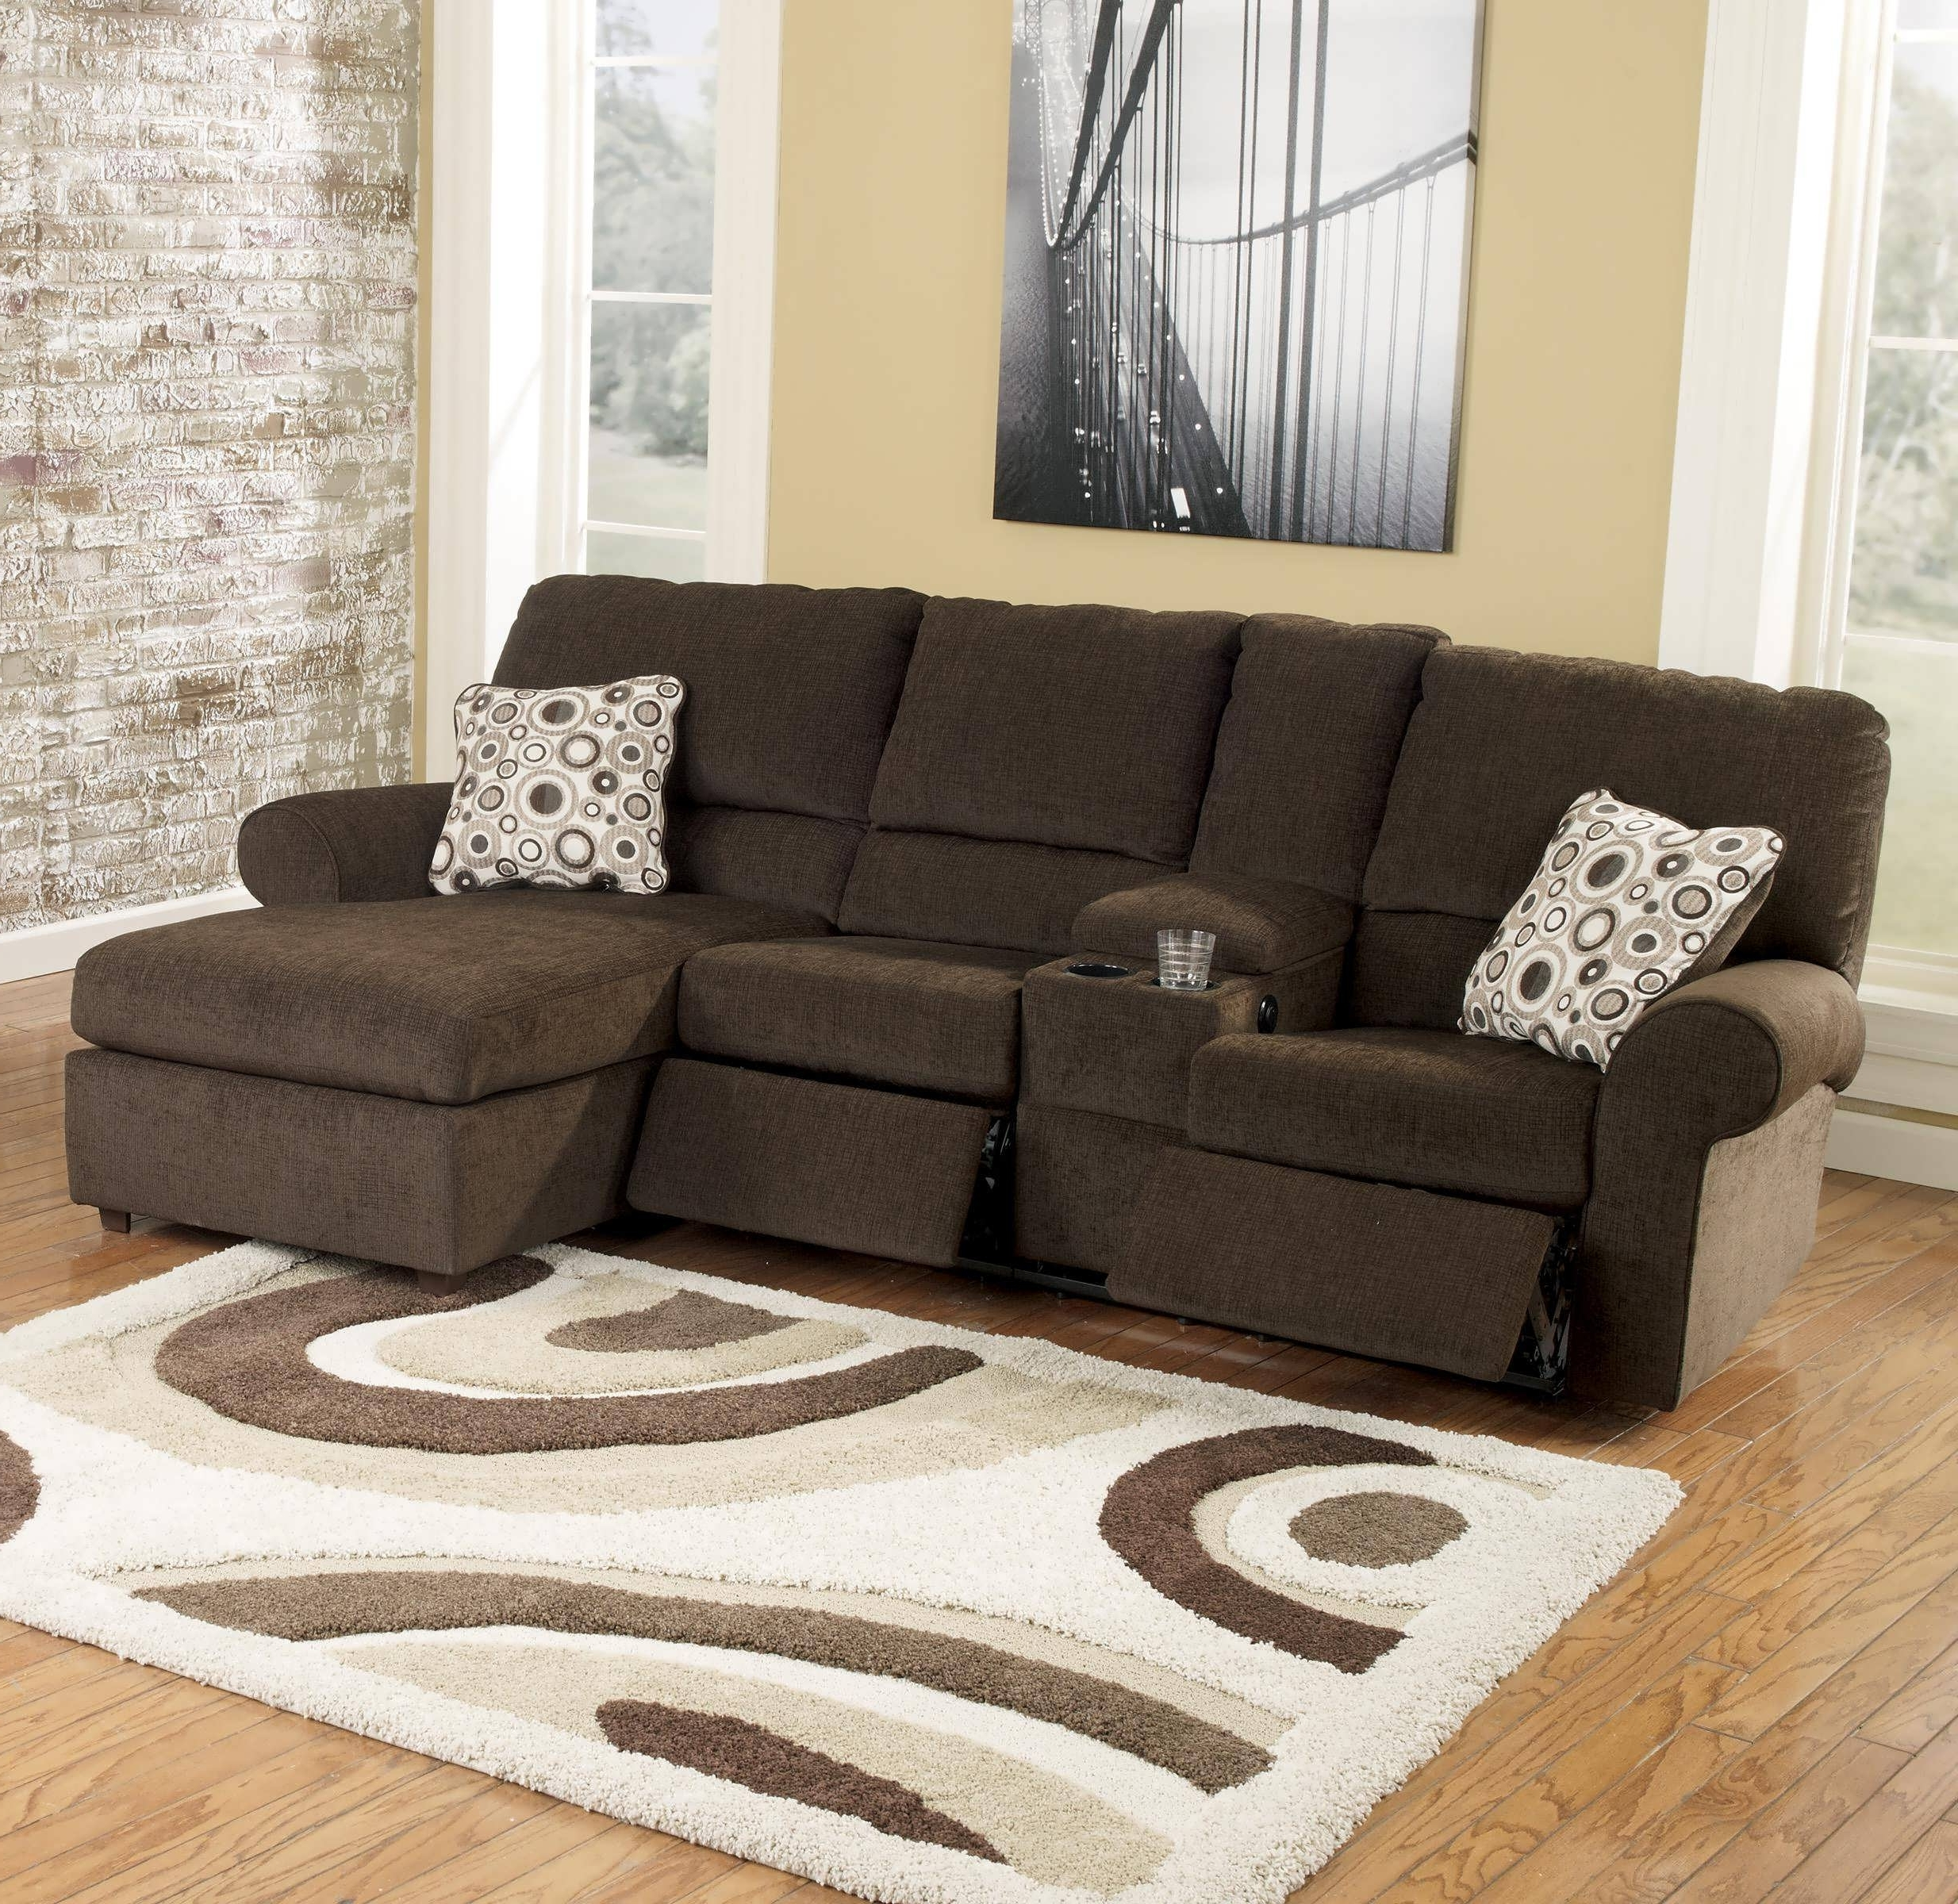 Preferred Sectional Sofas With Recliners And Chaise With Regard To Sofa : Small Sectional Sofa With Chaise Small Sectional Couch (View 8 of 15)